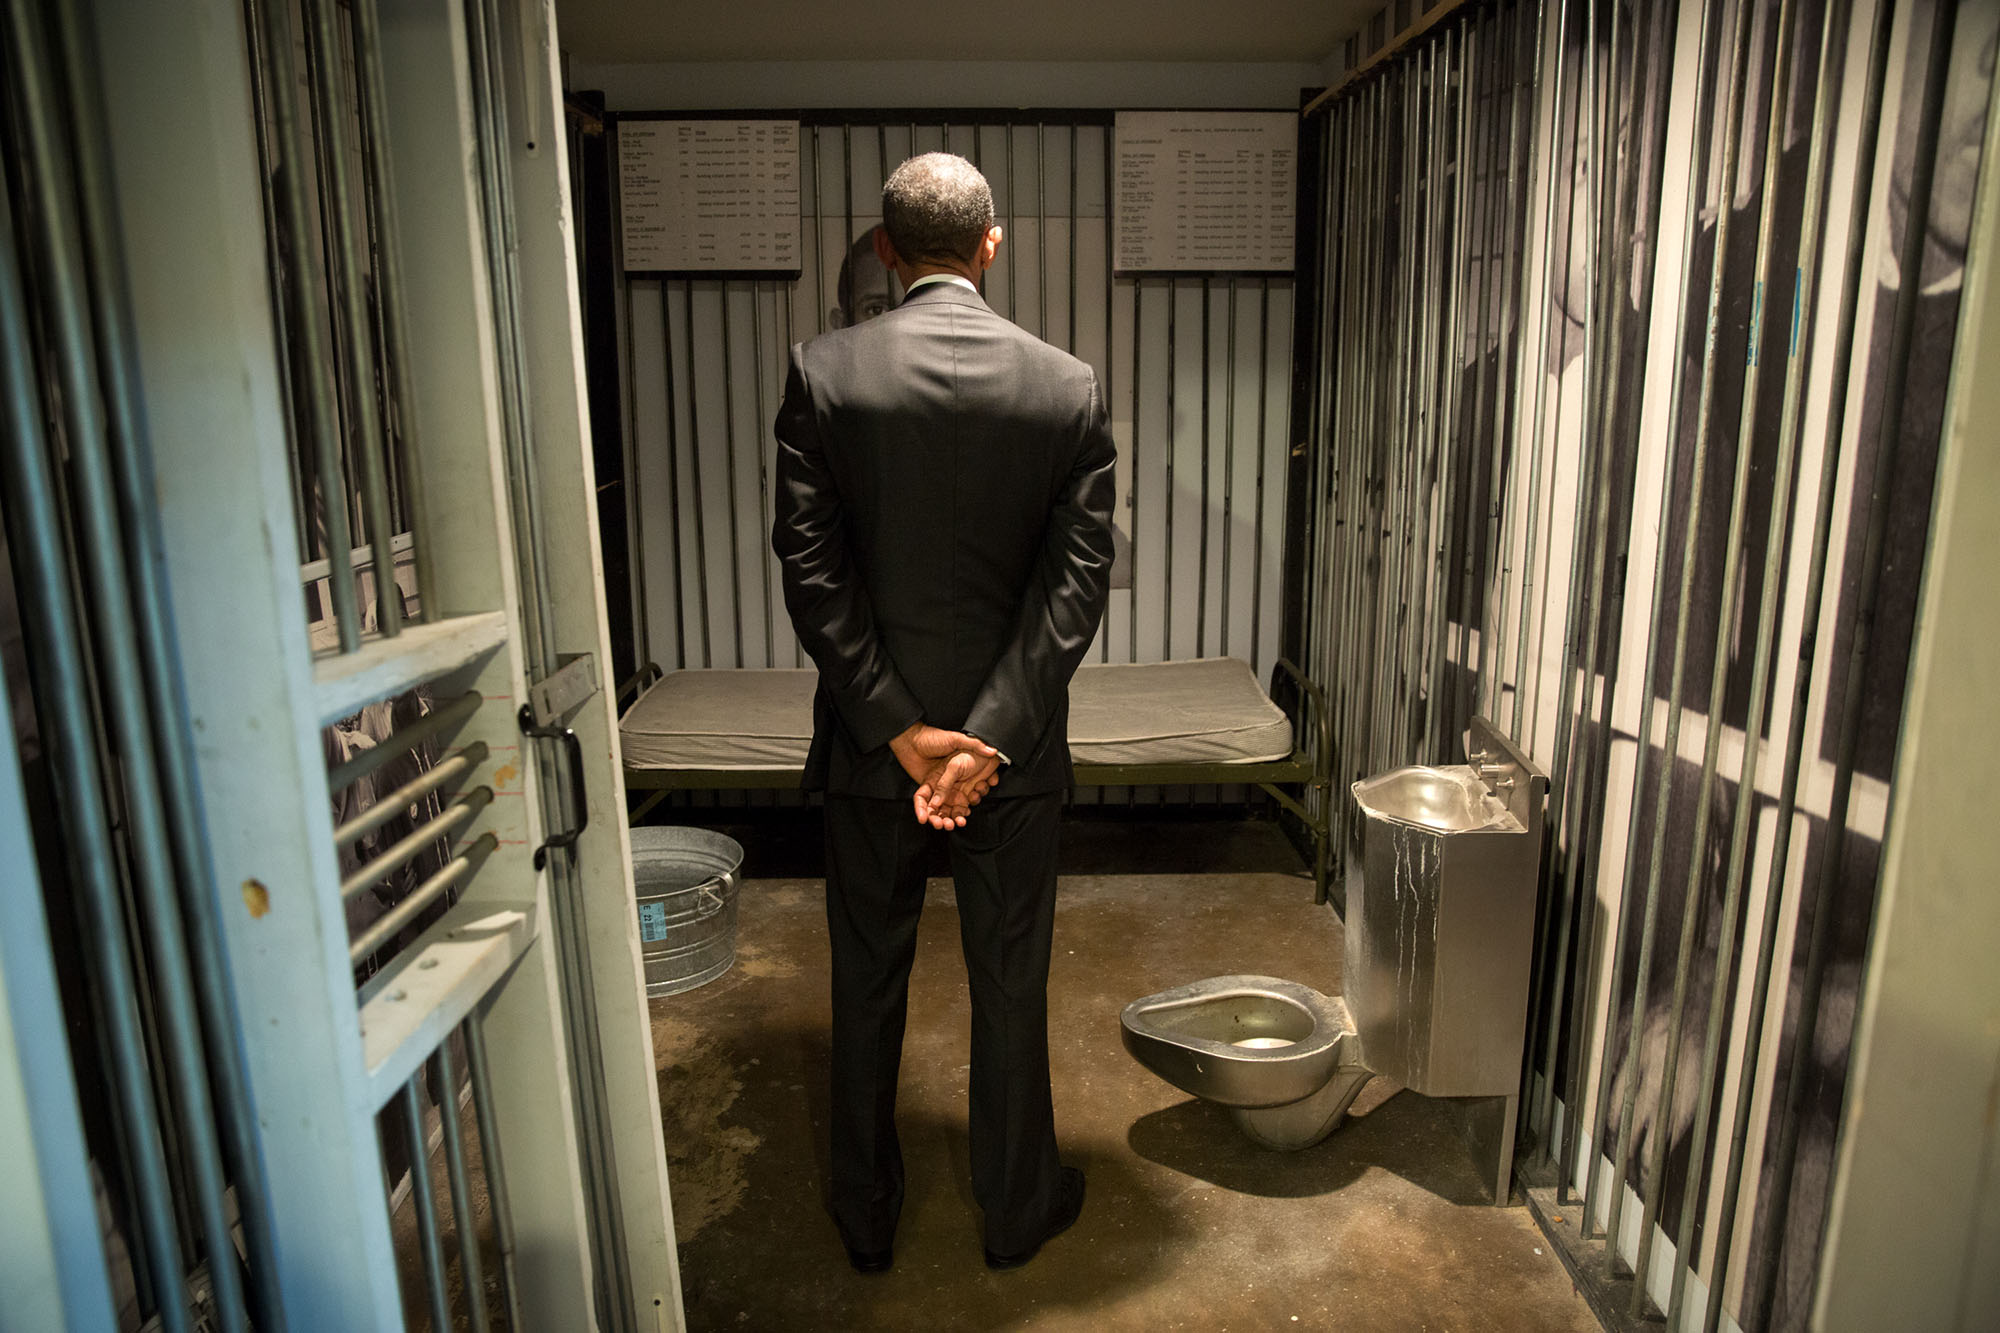 The President stands inside a replica prison cell at the museum. (Official White House Photo by Pete Souza)